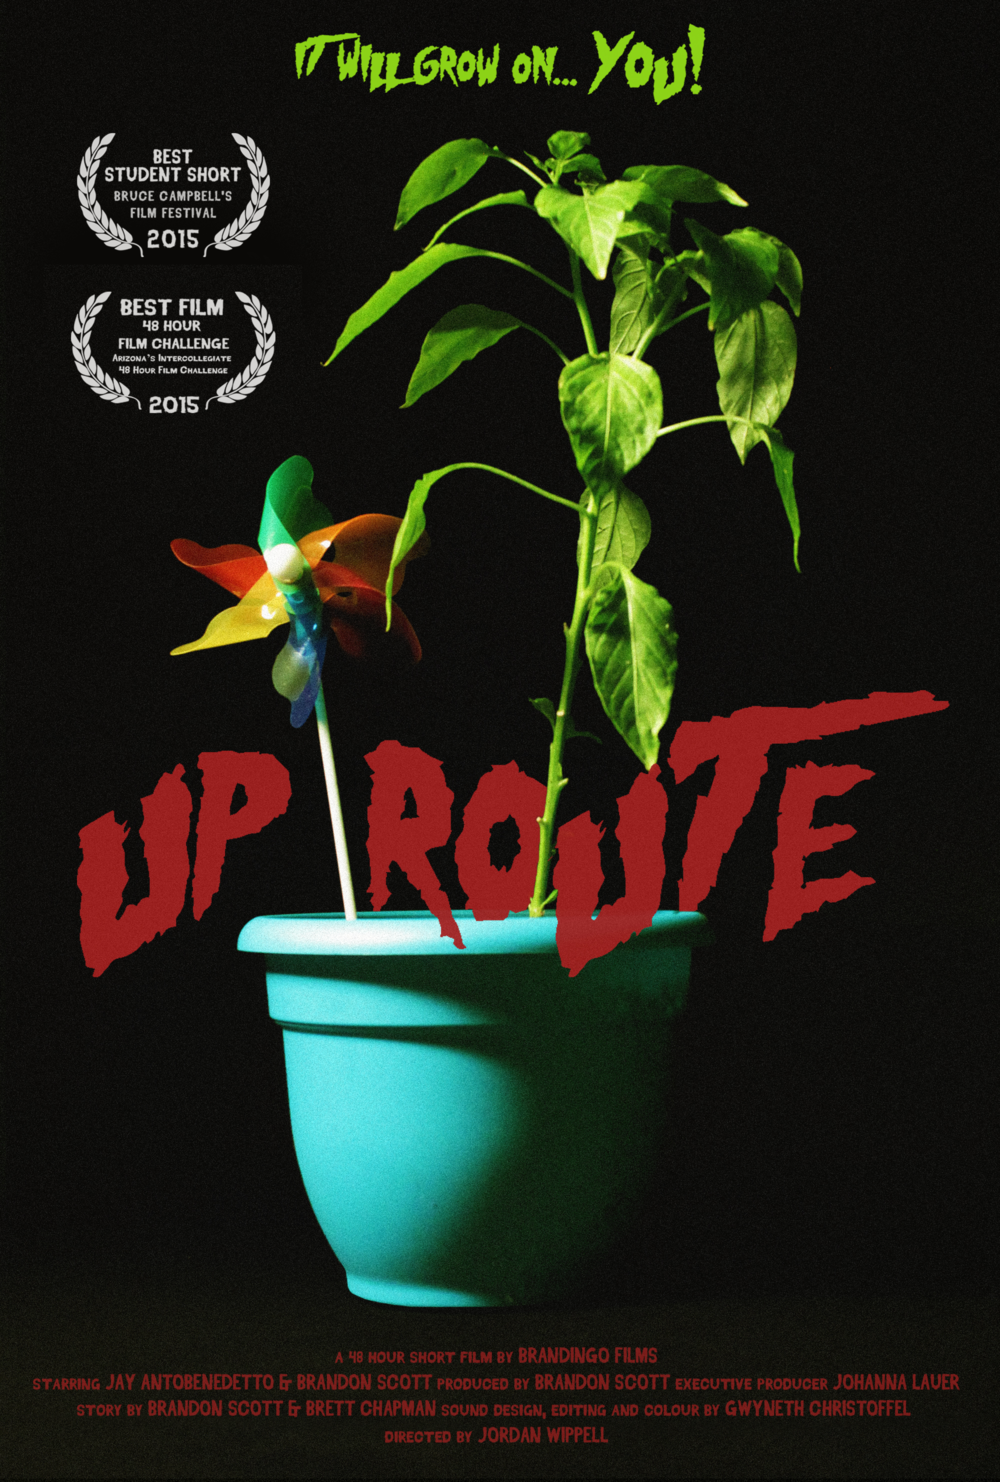 UP ROUTE (2015) - Written, filmed and edited for a 48-hour film challenge,